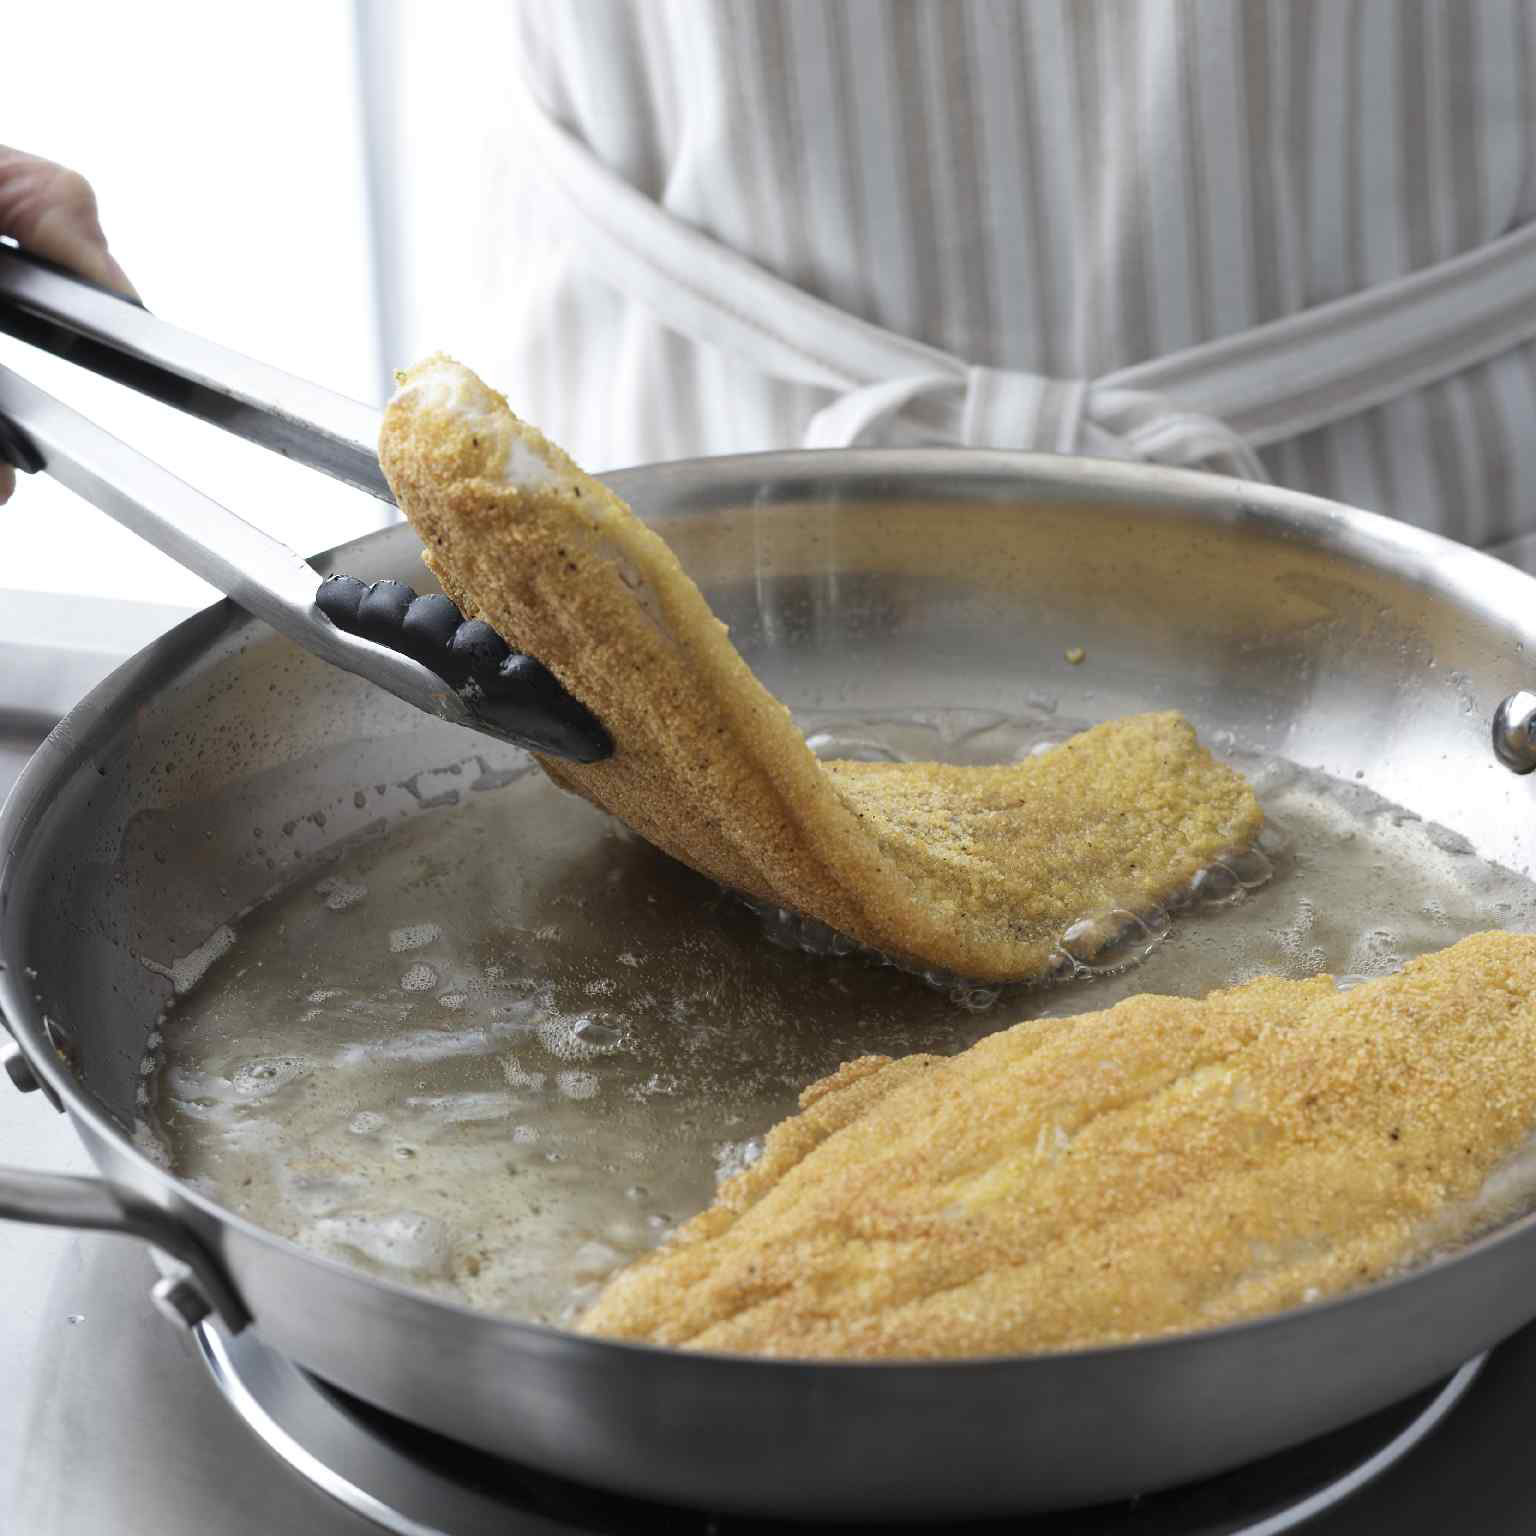 Fish fillets fried in pan